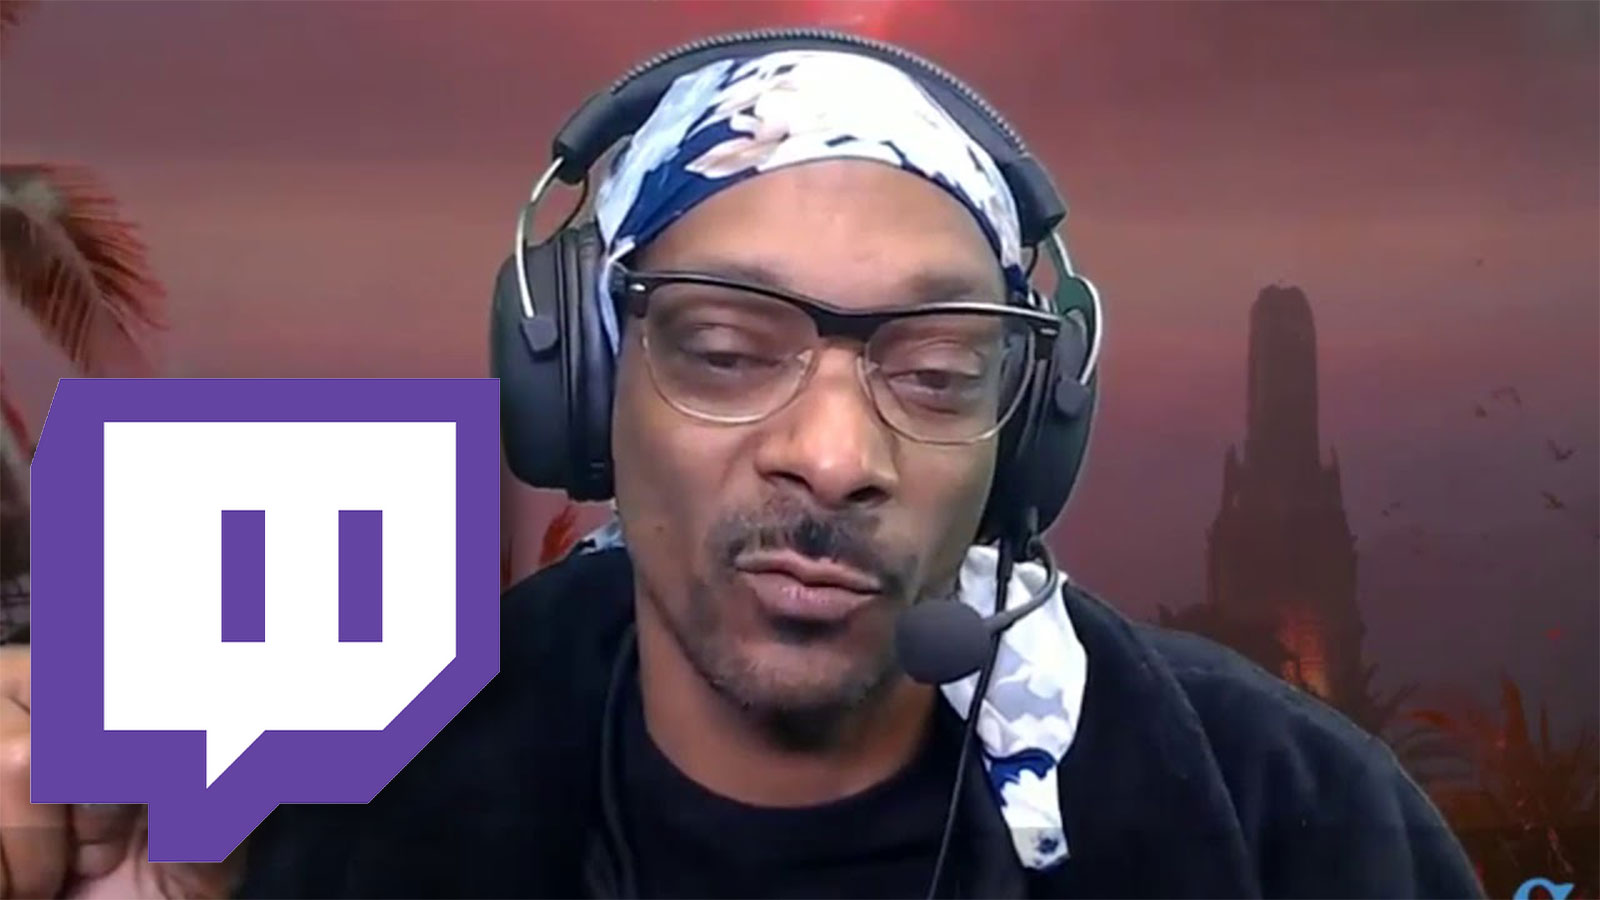 Snoop Dogg rage quits on Twitch and forgets to turn stream off - Dexerto